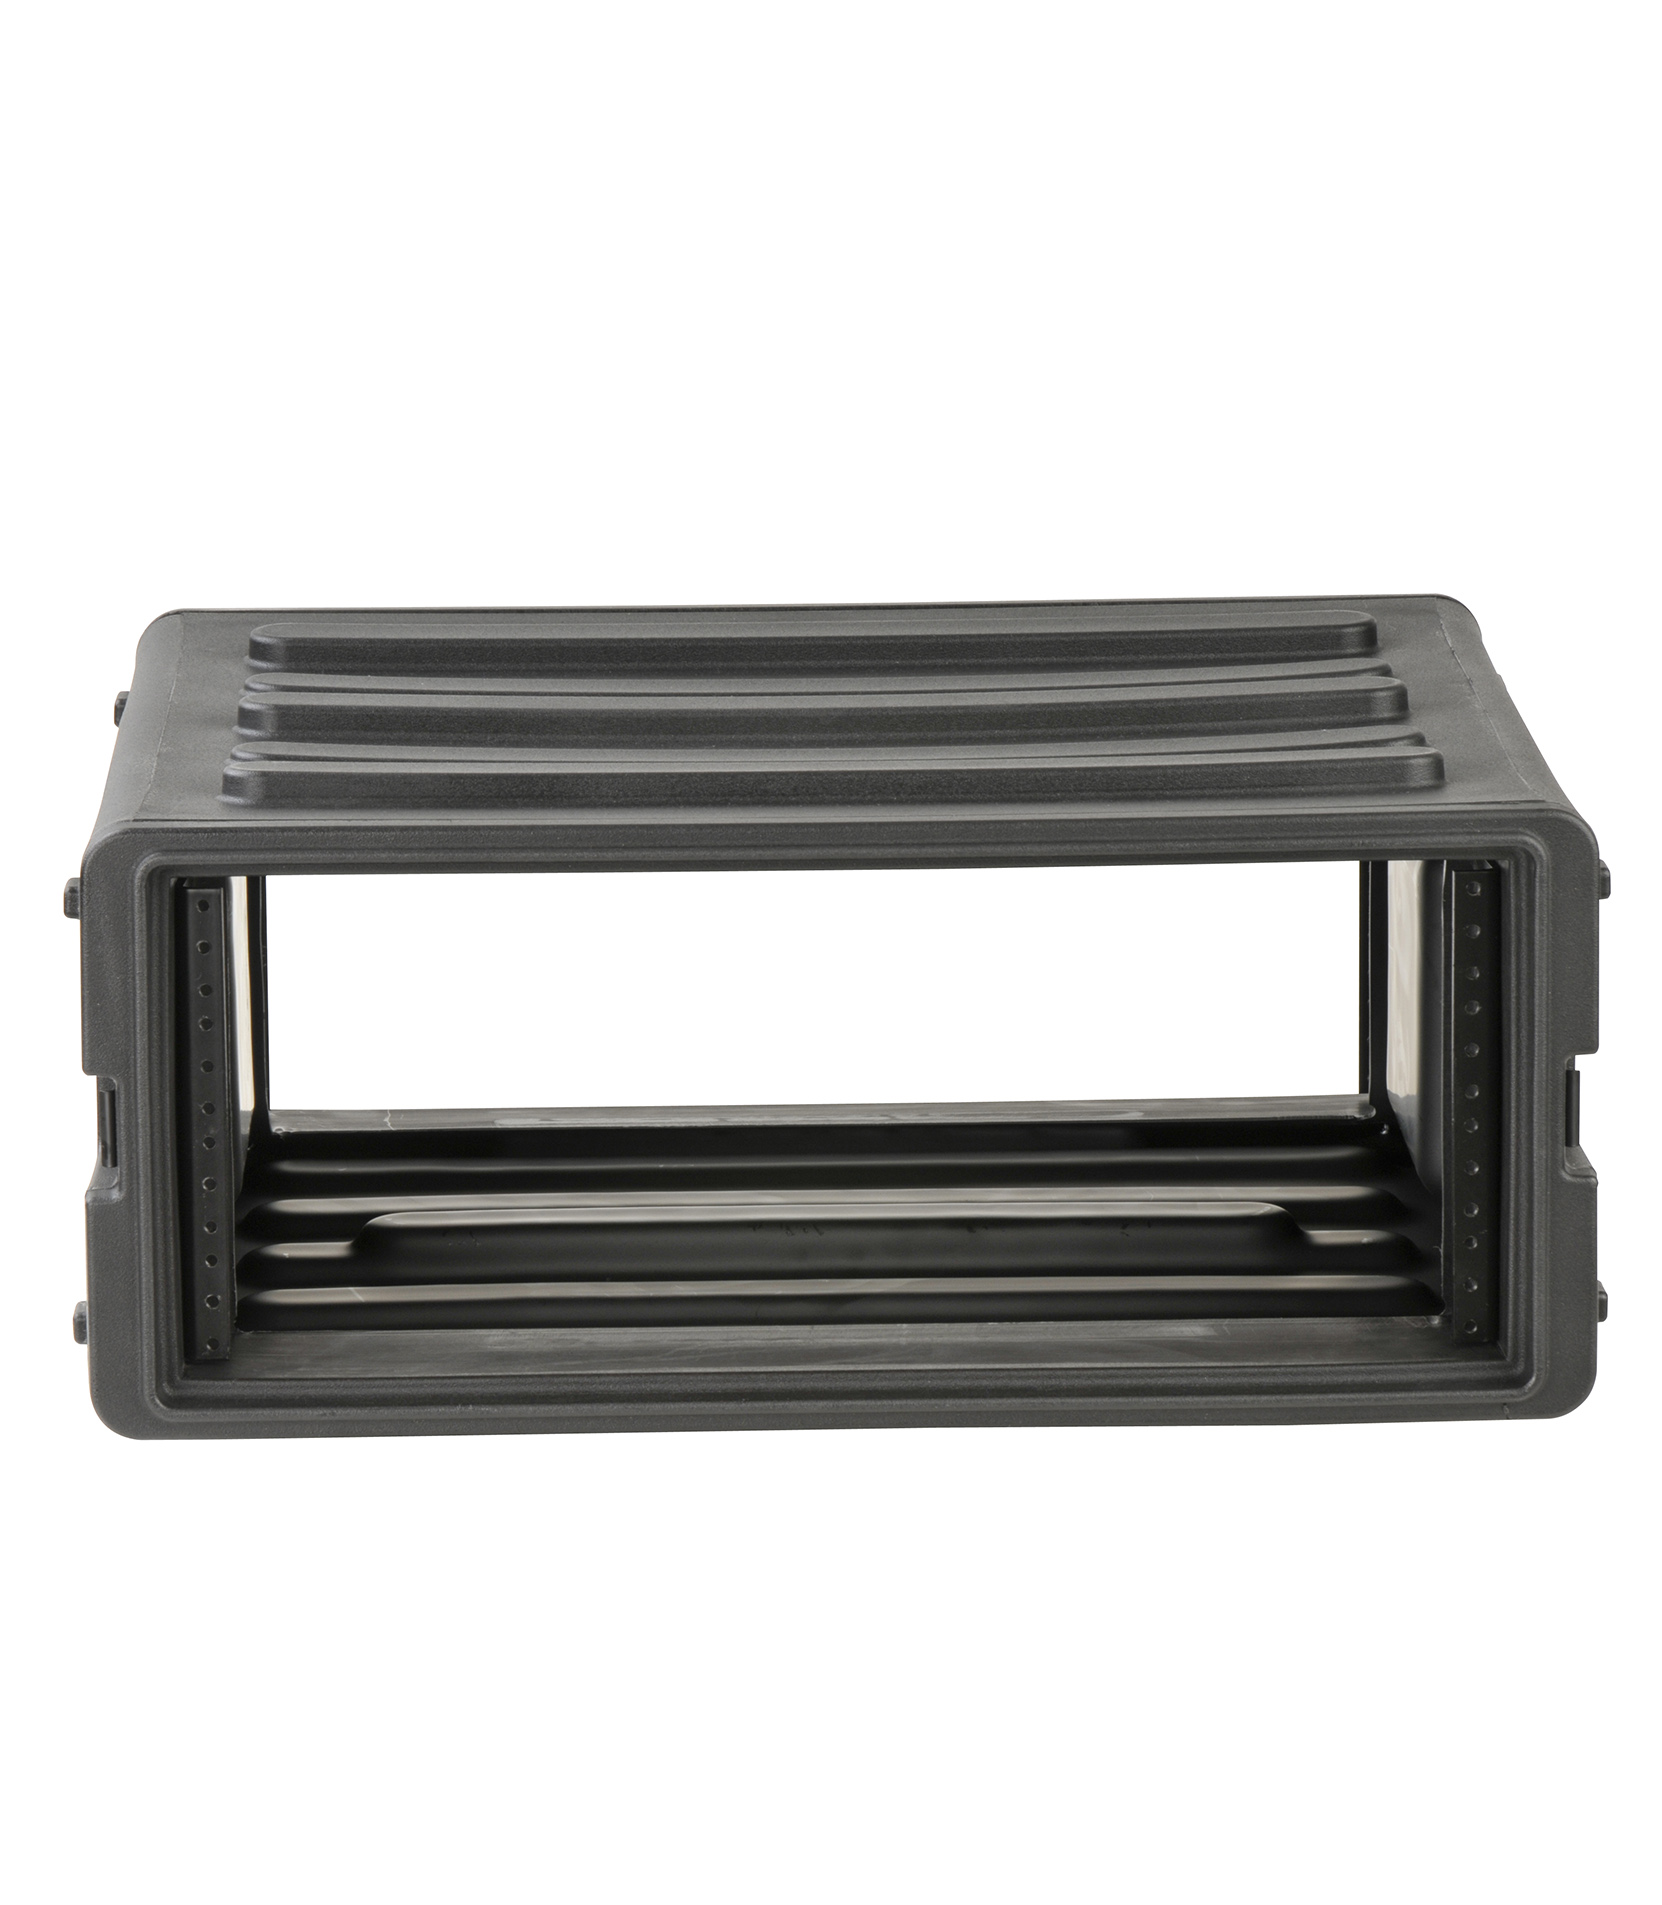 Melody House Musical Instruments Store - 1SKB R4U 4U Space Roto Molded Rack